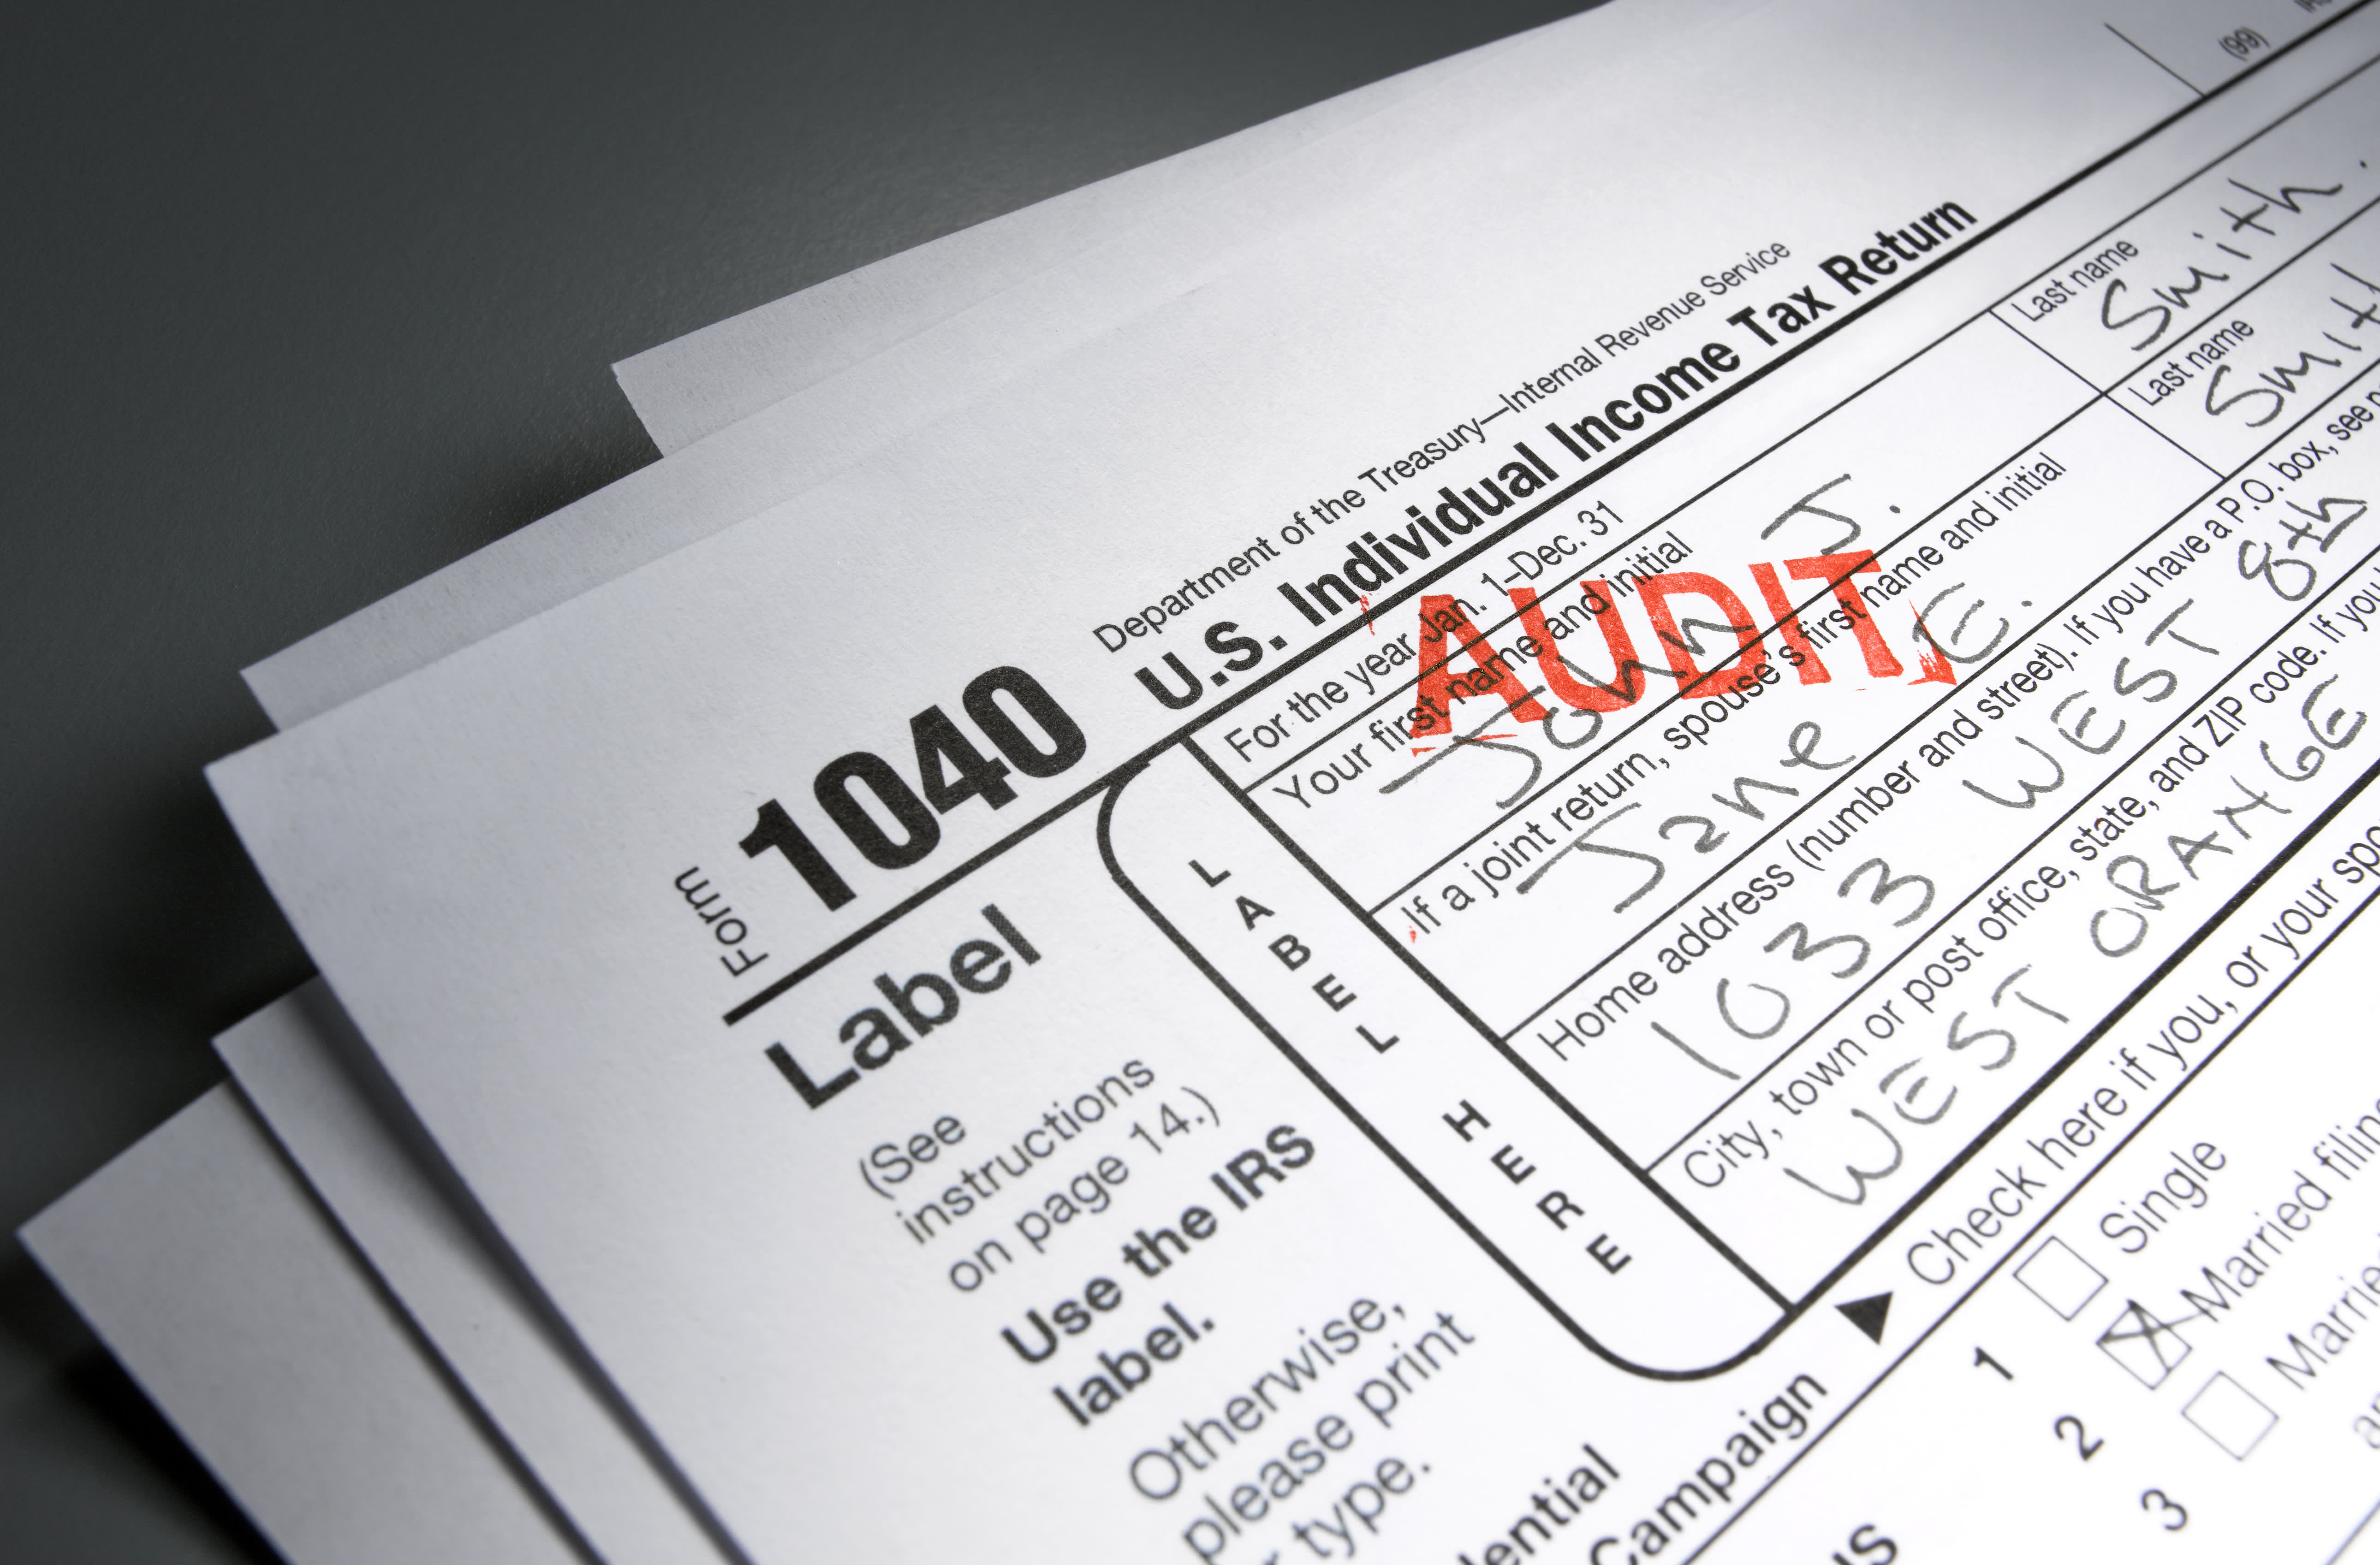 This tax move could get wealthy investors in hot water with IRS